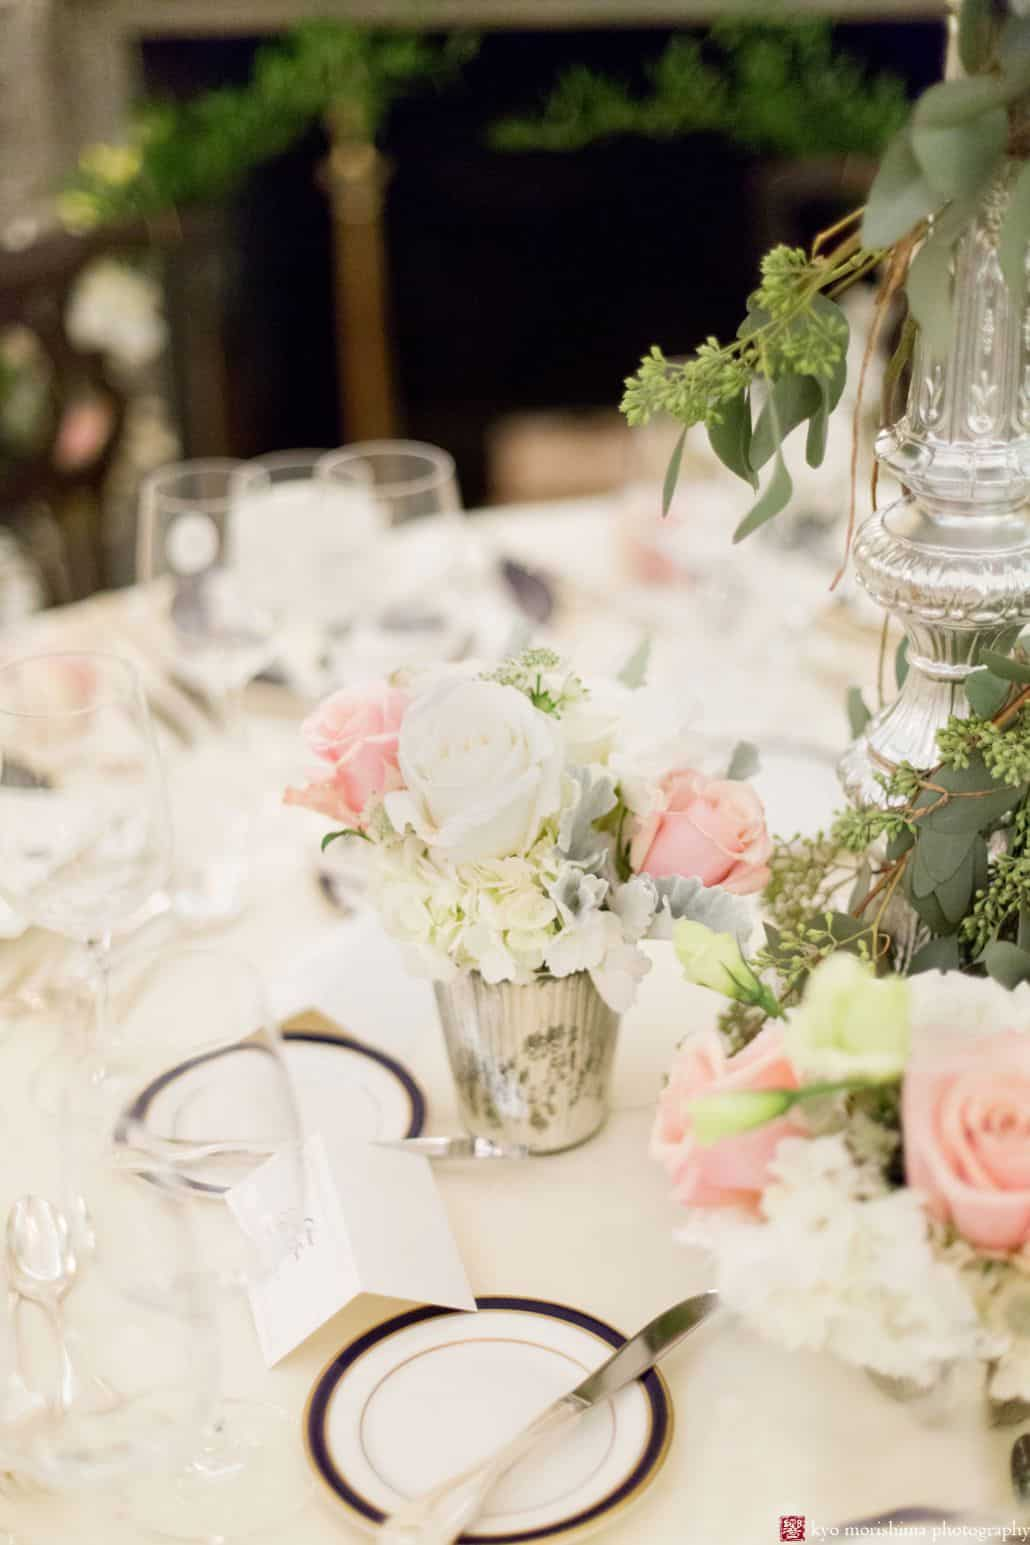 Winter wedding table top floral arrangements at the Lotos Club in NYC with pink and white roses, eucalyptus leaves, and hydrangea. Wedding flower design by Fleur du Mois.